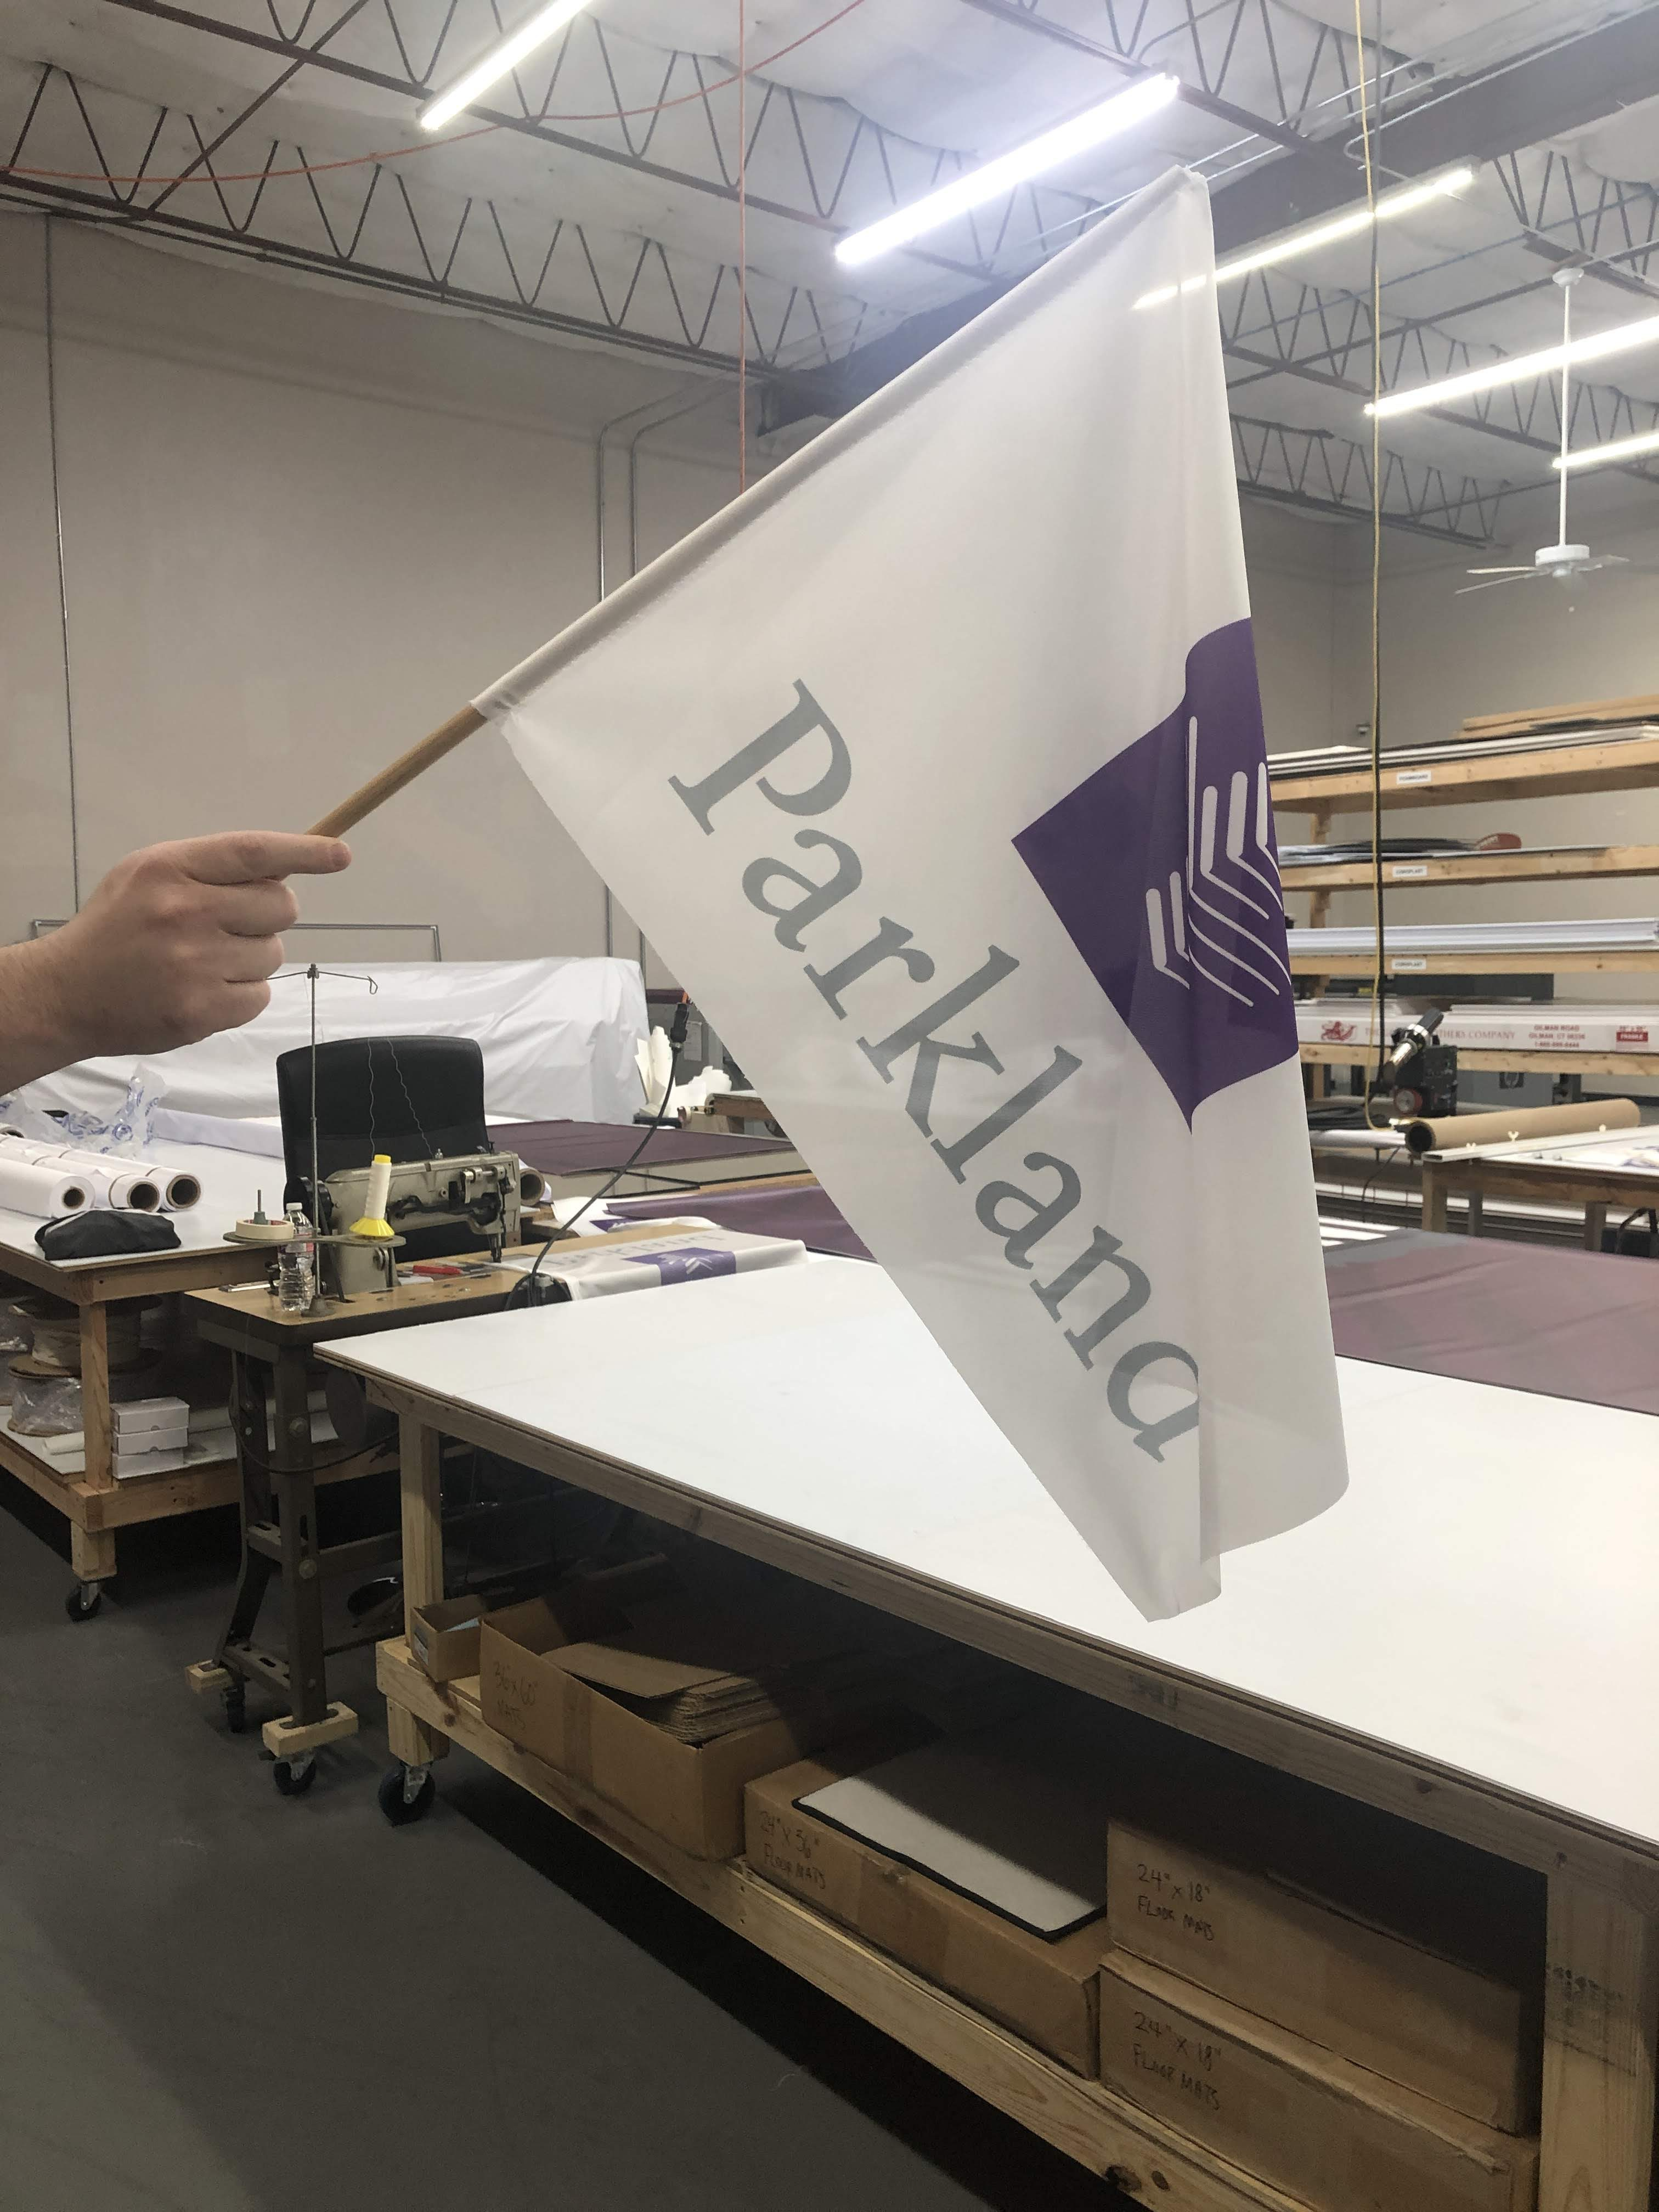 Dye sublimated fabric flags